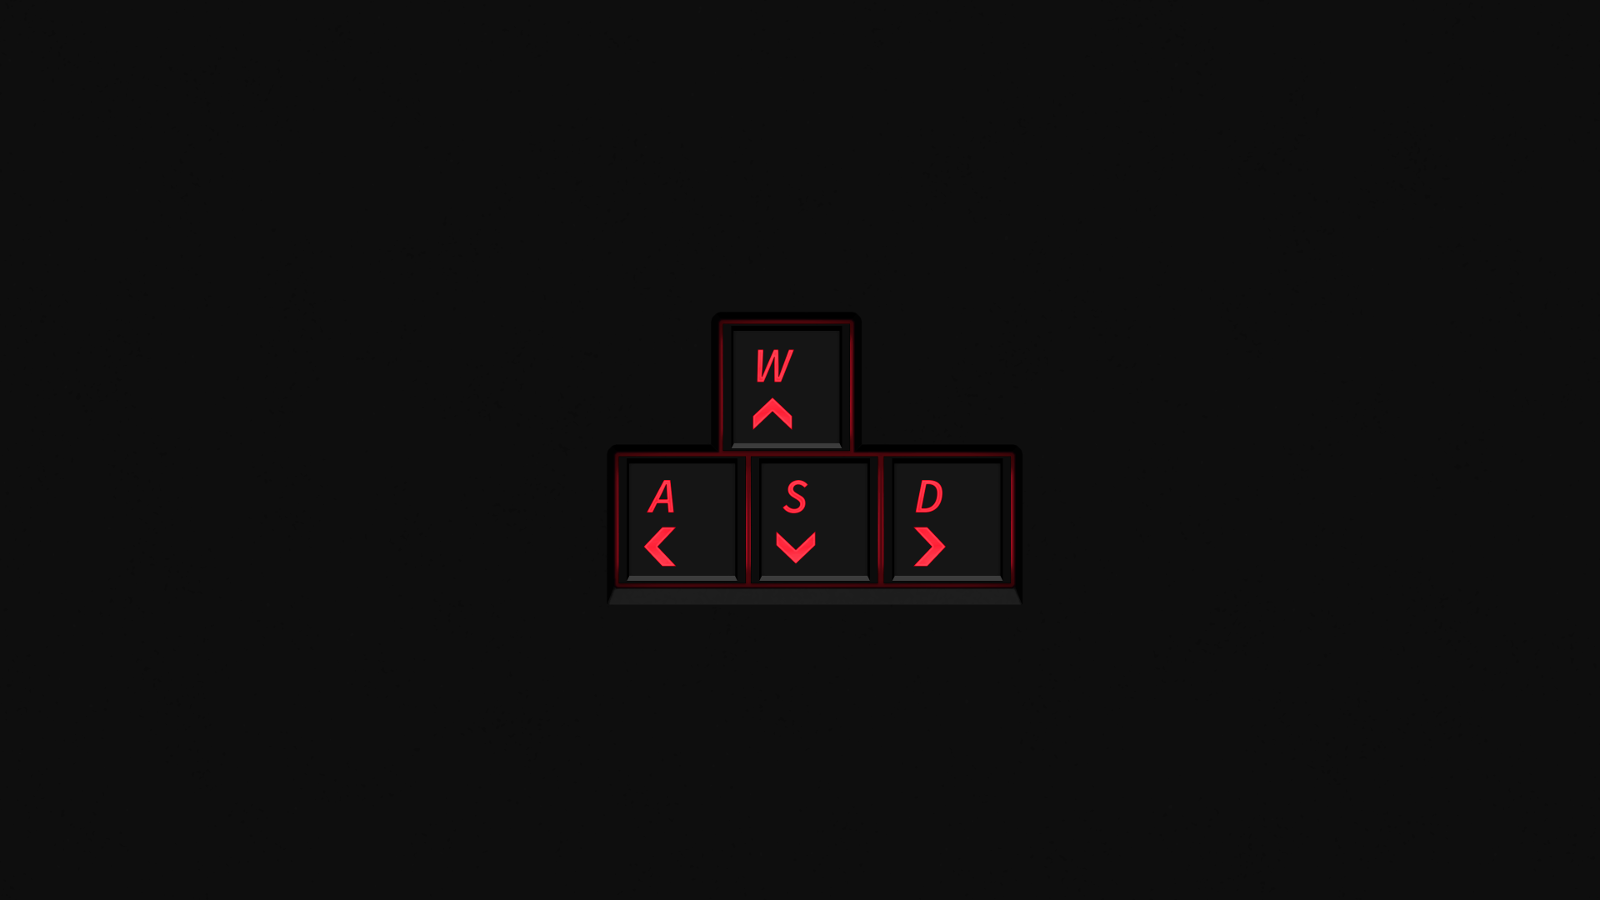 https://s3.amazonaws.com/null-src/images/posts/clevo-p-series-wasd-wallpapers/ClevoWASDRed_1600.png